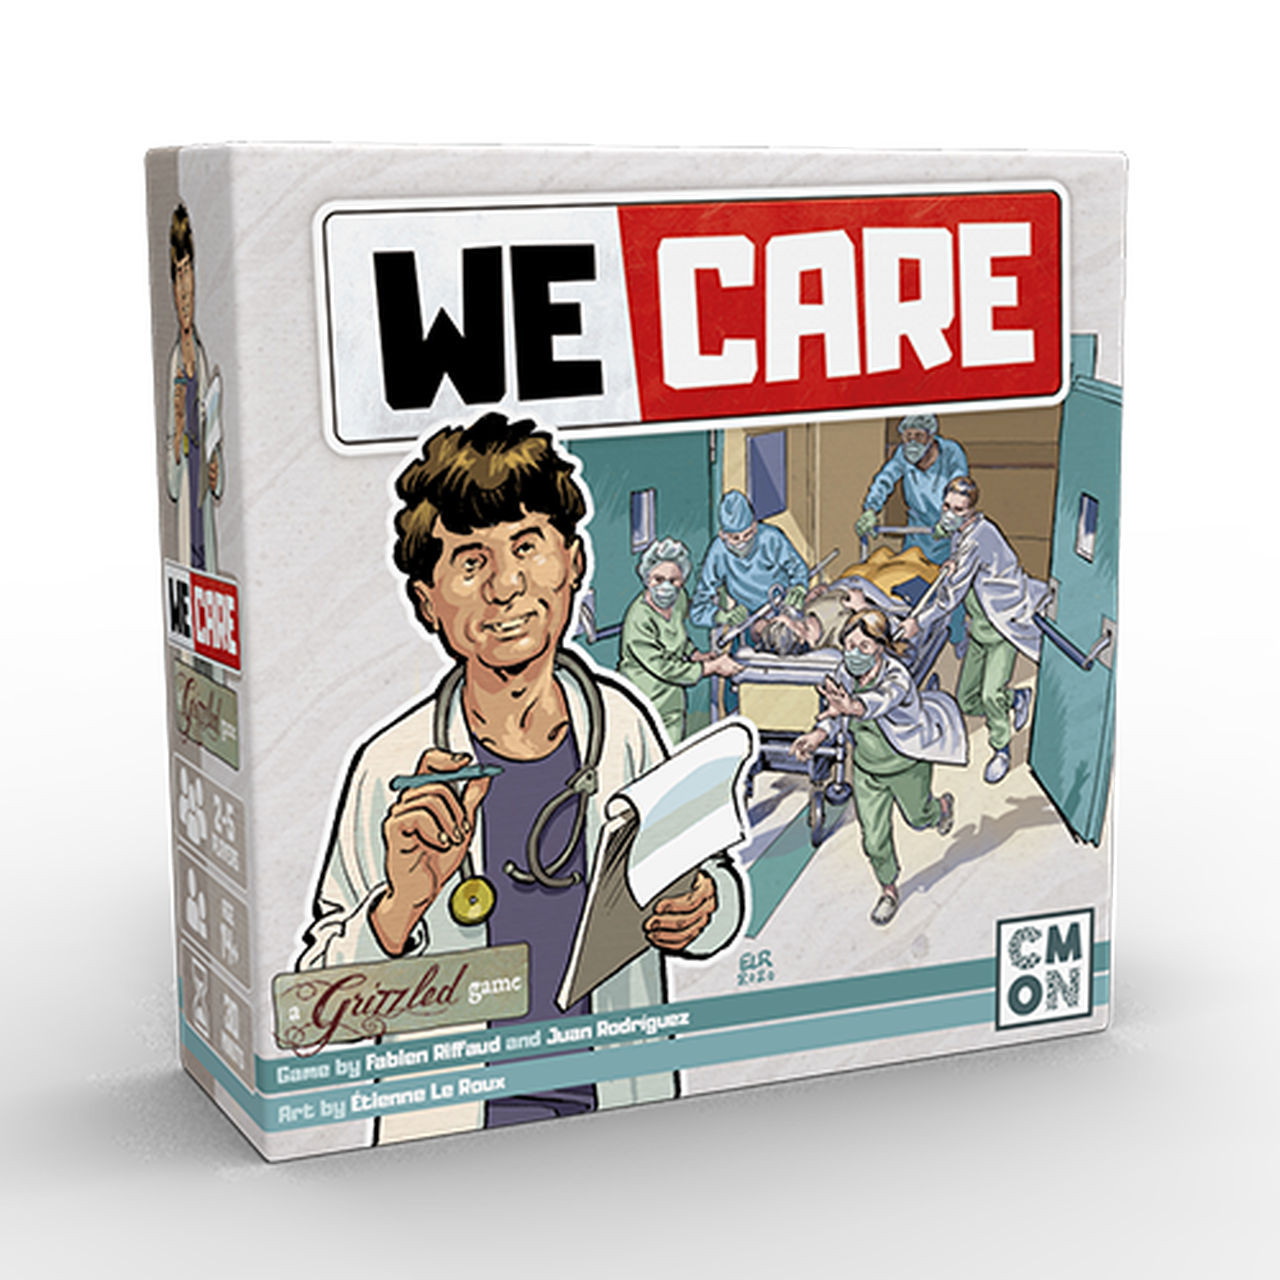 GRZ004 - The Grizzled: We Care